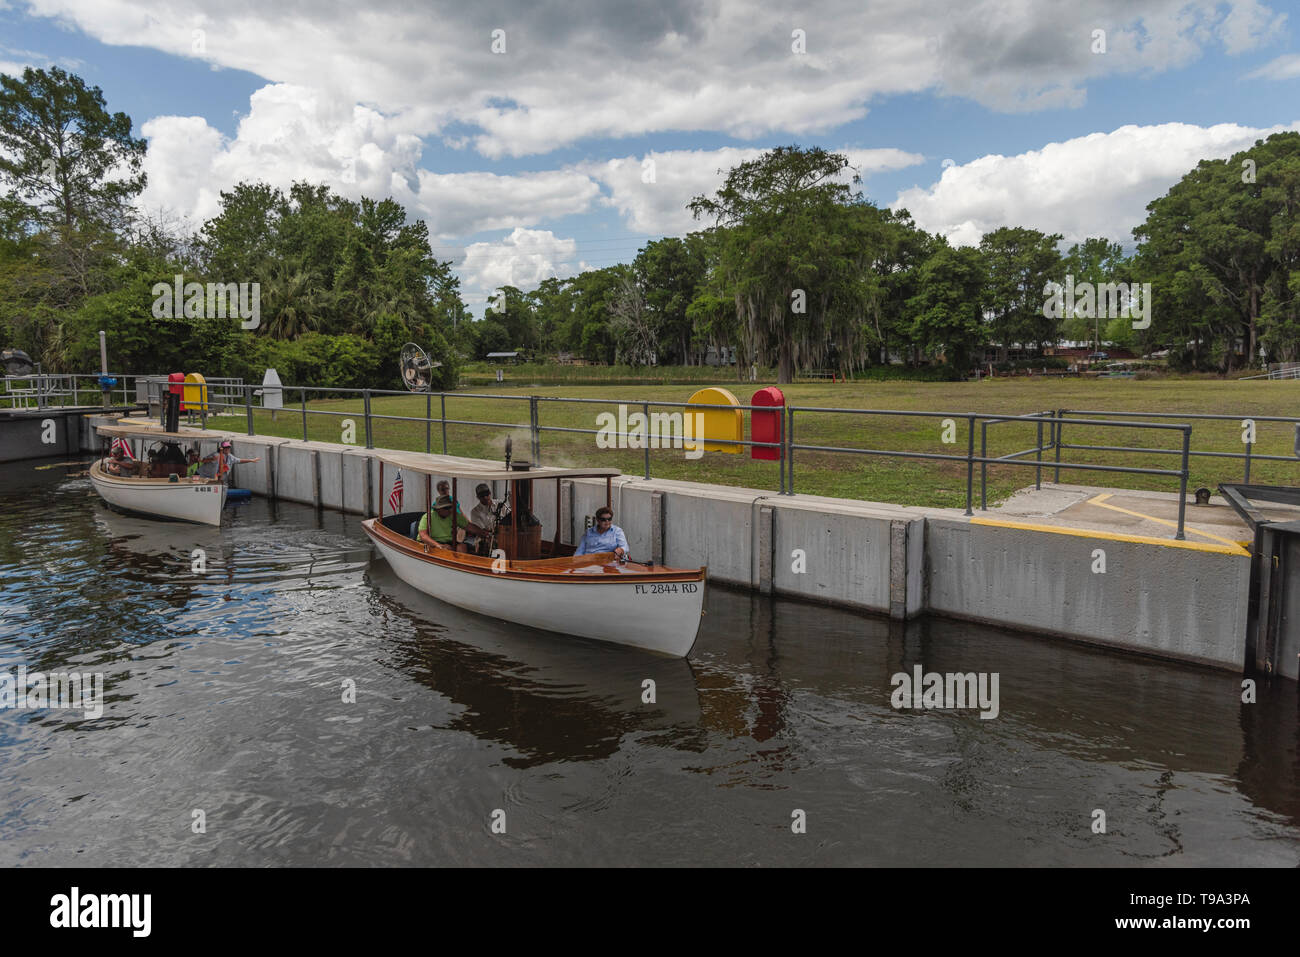 Steamboats leaving the Burrell Navigational lock and Dam located on the Haines Creek in Leesburg, Florida USA - Stock Image